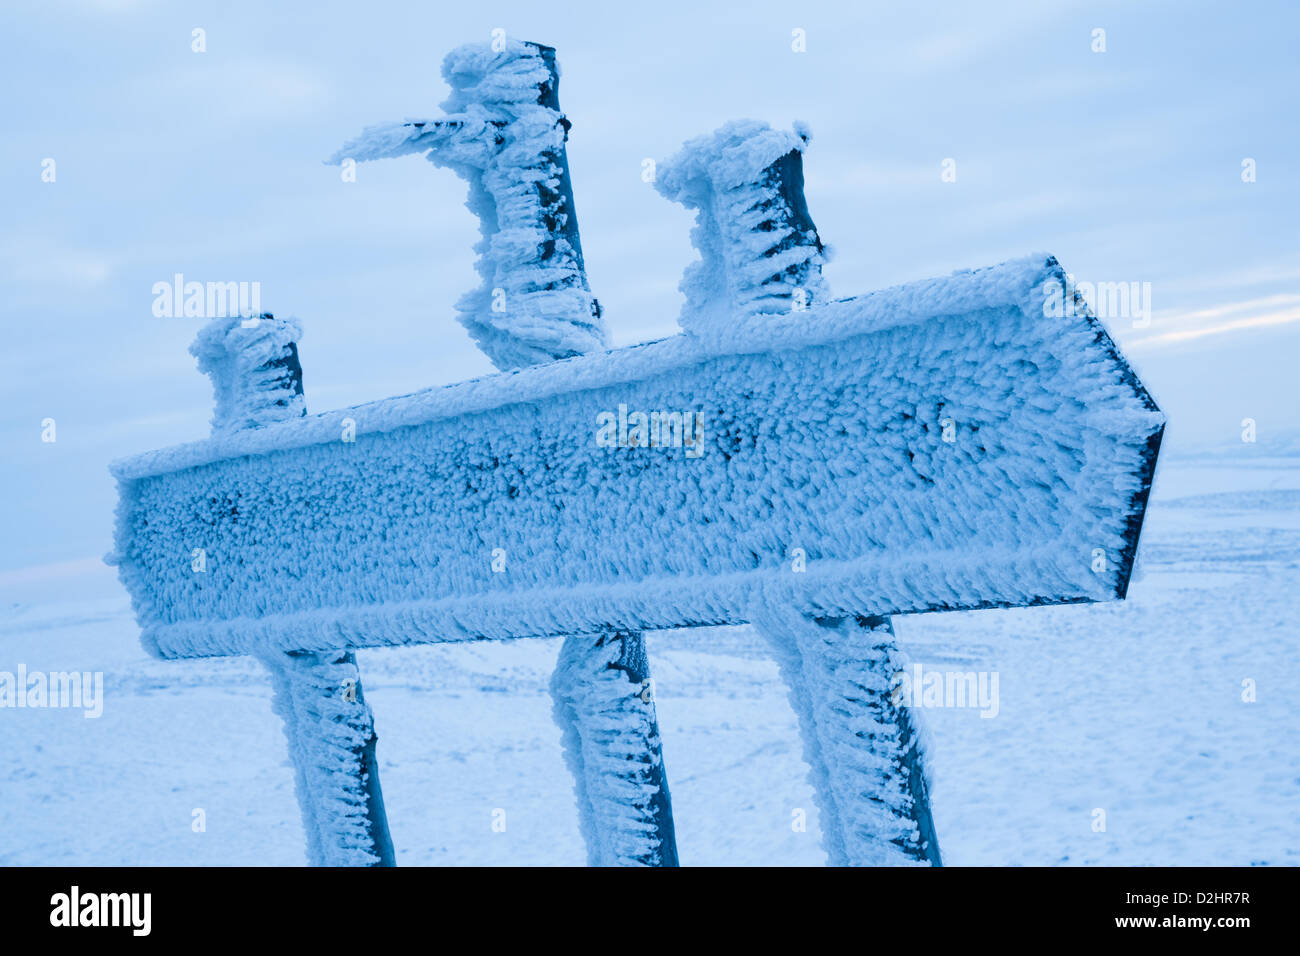 Peak District, UK. 24th January 2013. 24th January 2013. Sub-zero conditions continue across the UK as shown by Stock Photo